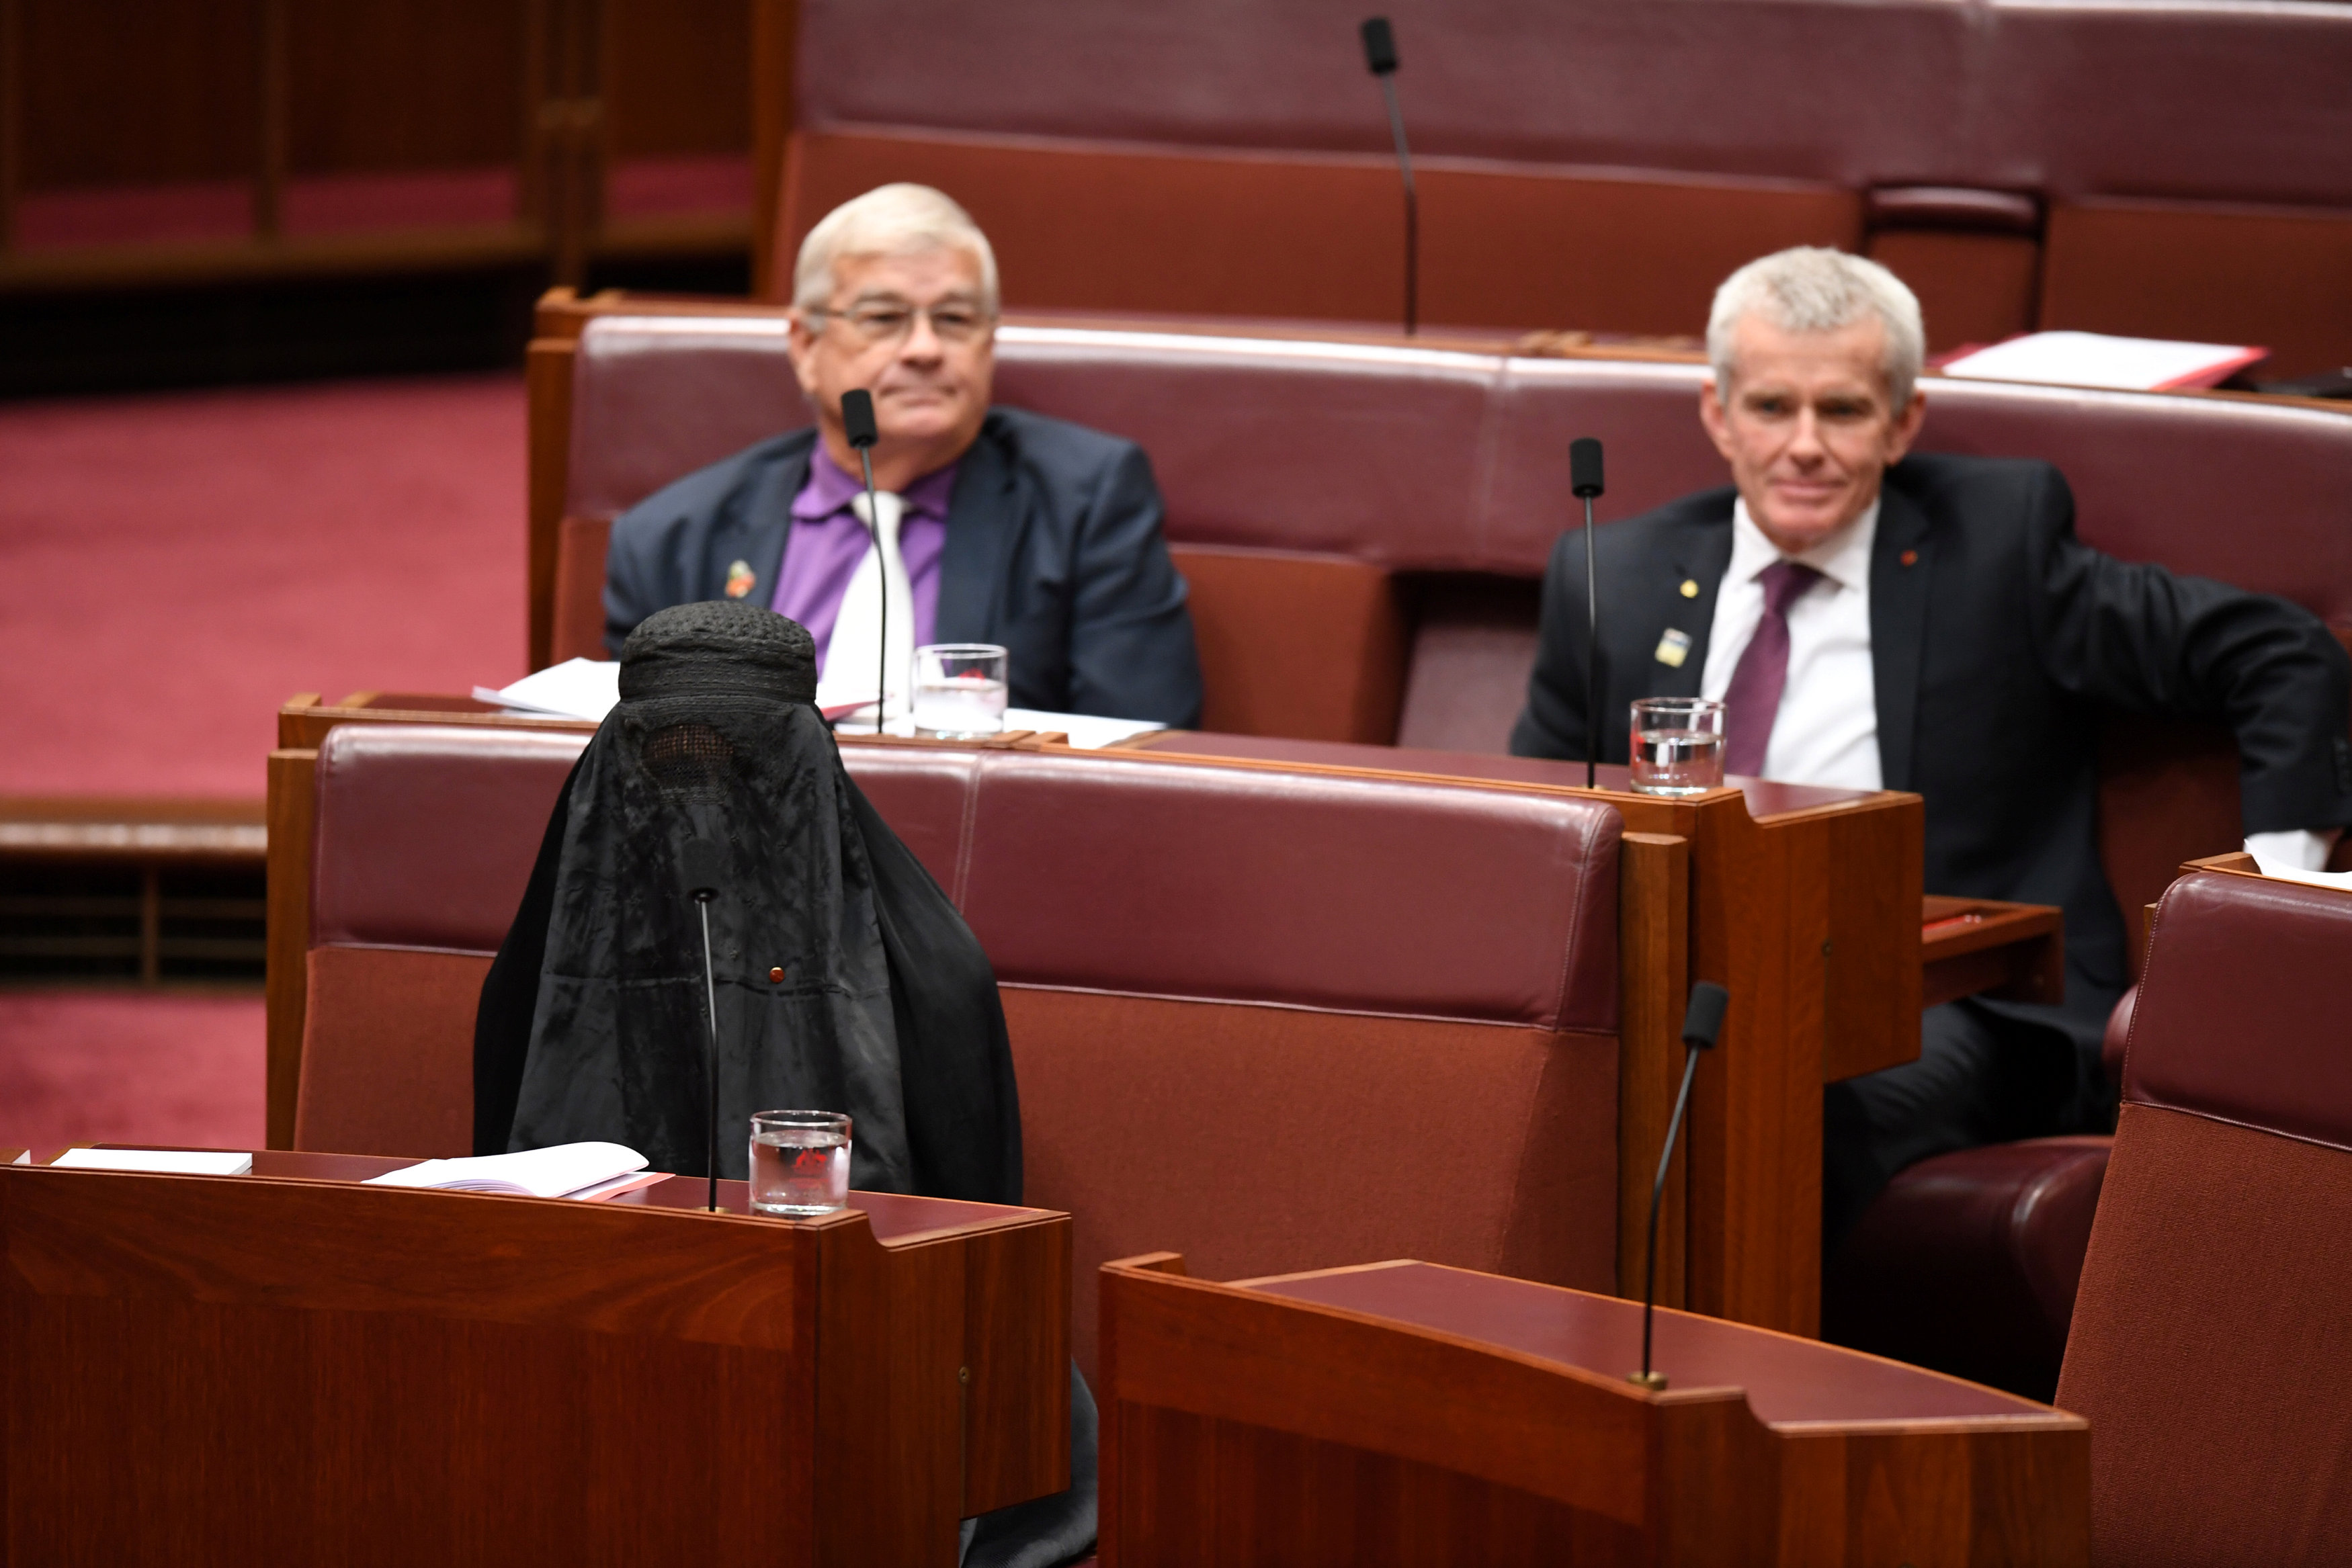 Australian One Nation party leader, Senator Pauline Hanson (L) wears a burqa in the Senate chamber at Parliament House in Canberra, Australia, August 17, 2017.  (AAP/Mick Tsikas/via REUTERS)